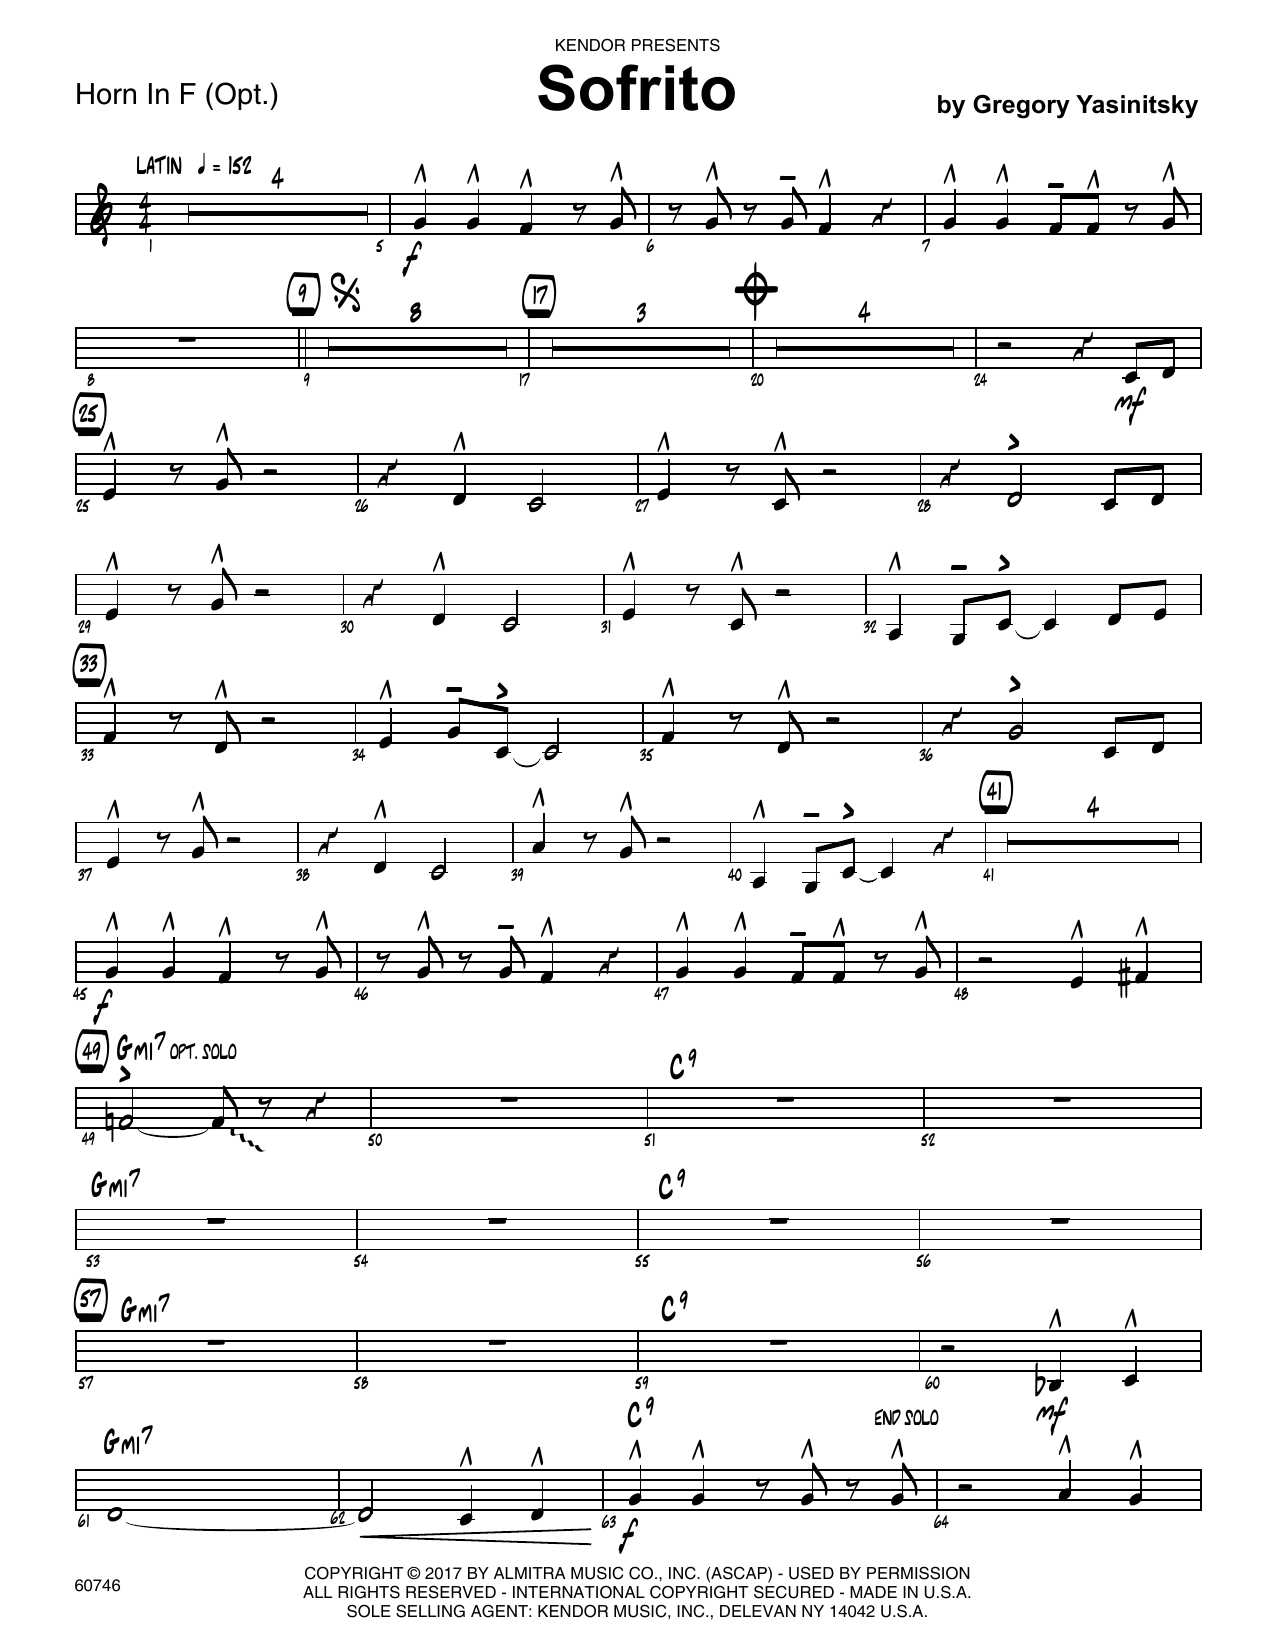 Sofrito - Horn in F Sheet Music